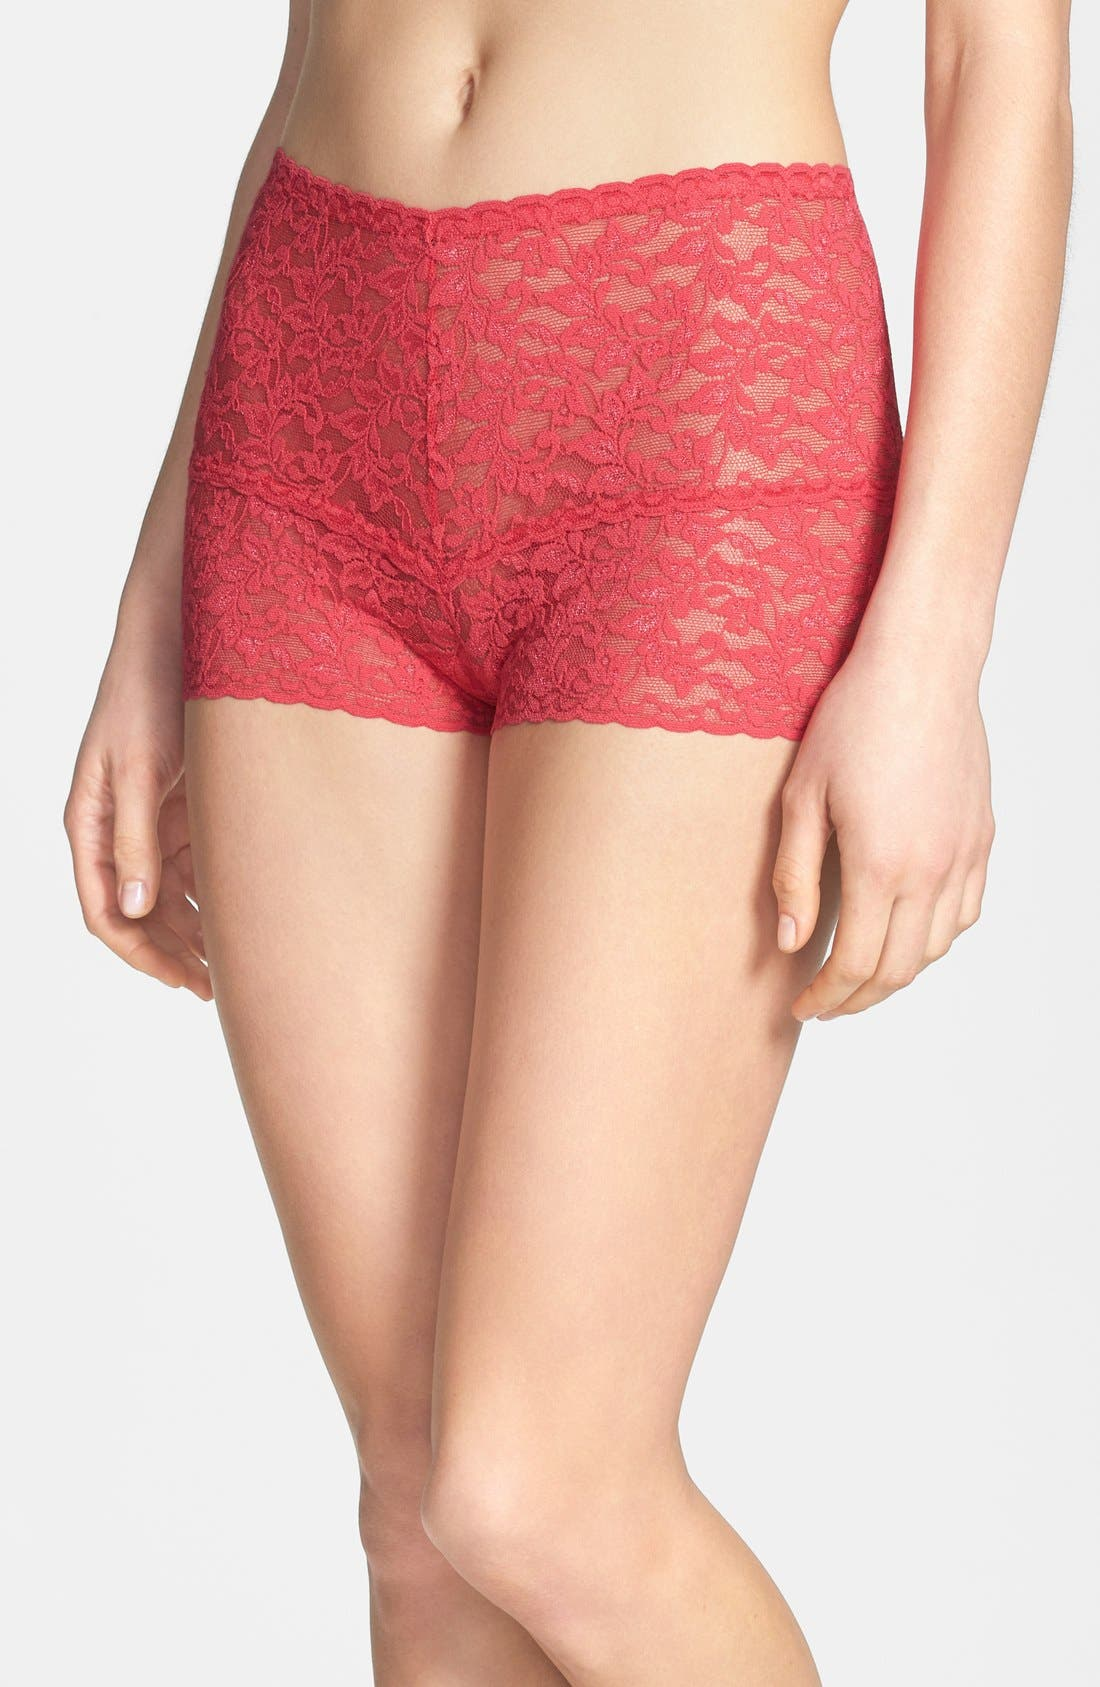 Alternate Image 1 Selected - Hanky Panky Retro Lace Hotpants